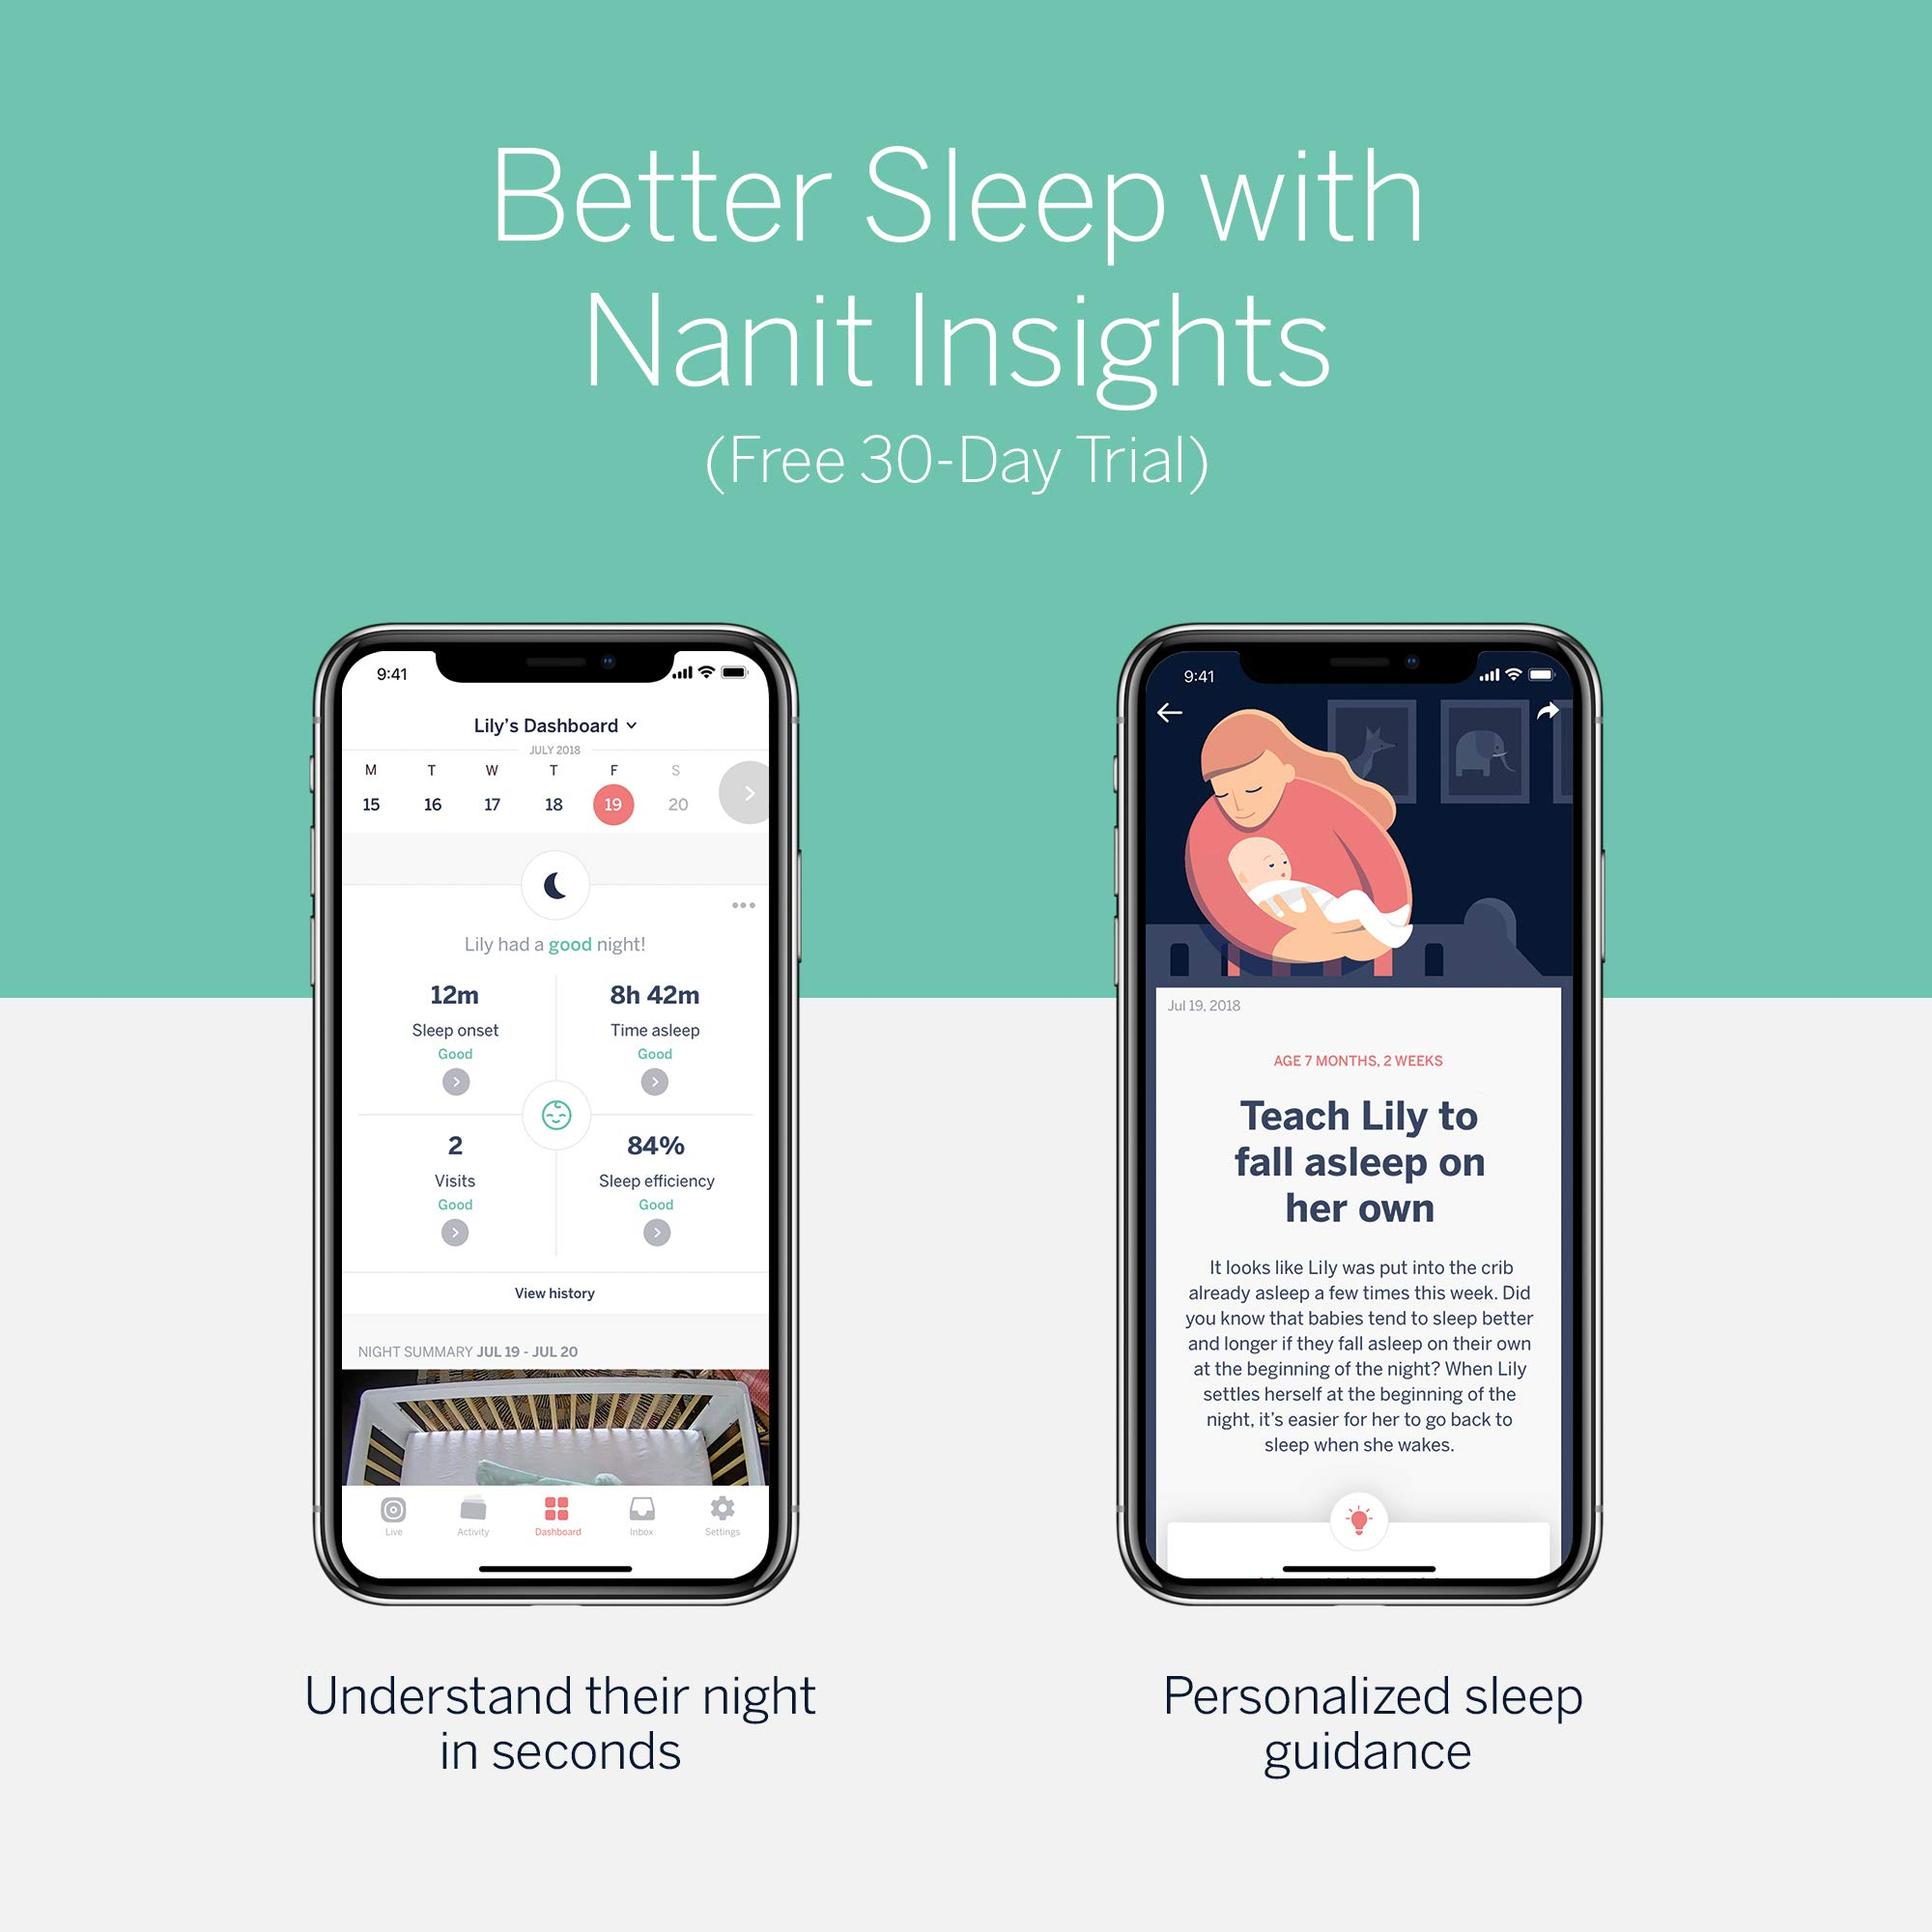 Nanit Smart Baby Monitor and Wall Stand - Camera with HD Video & Audio, Sleep Tracking, Night Vision, Temperature & Humidity Sensors, and Nightlight by Nanit (Image #5)